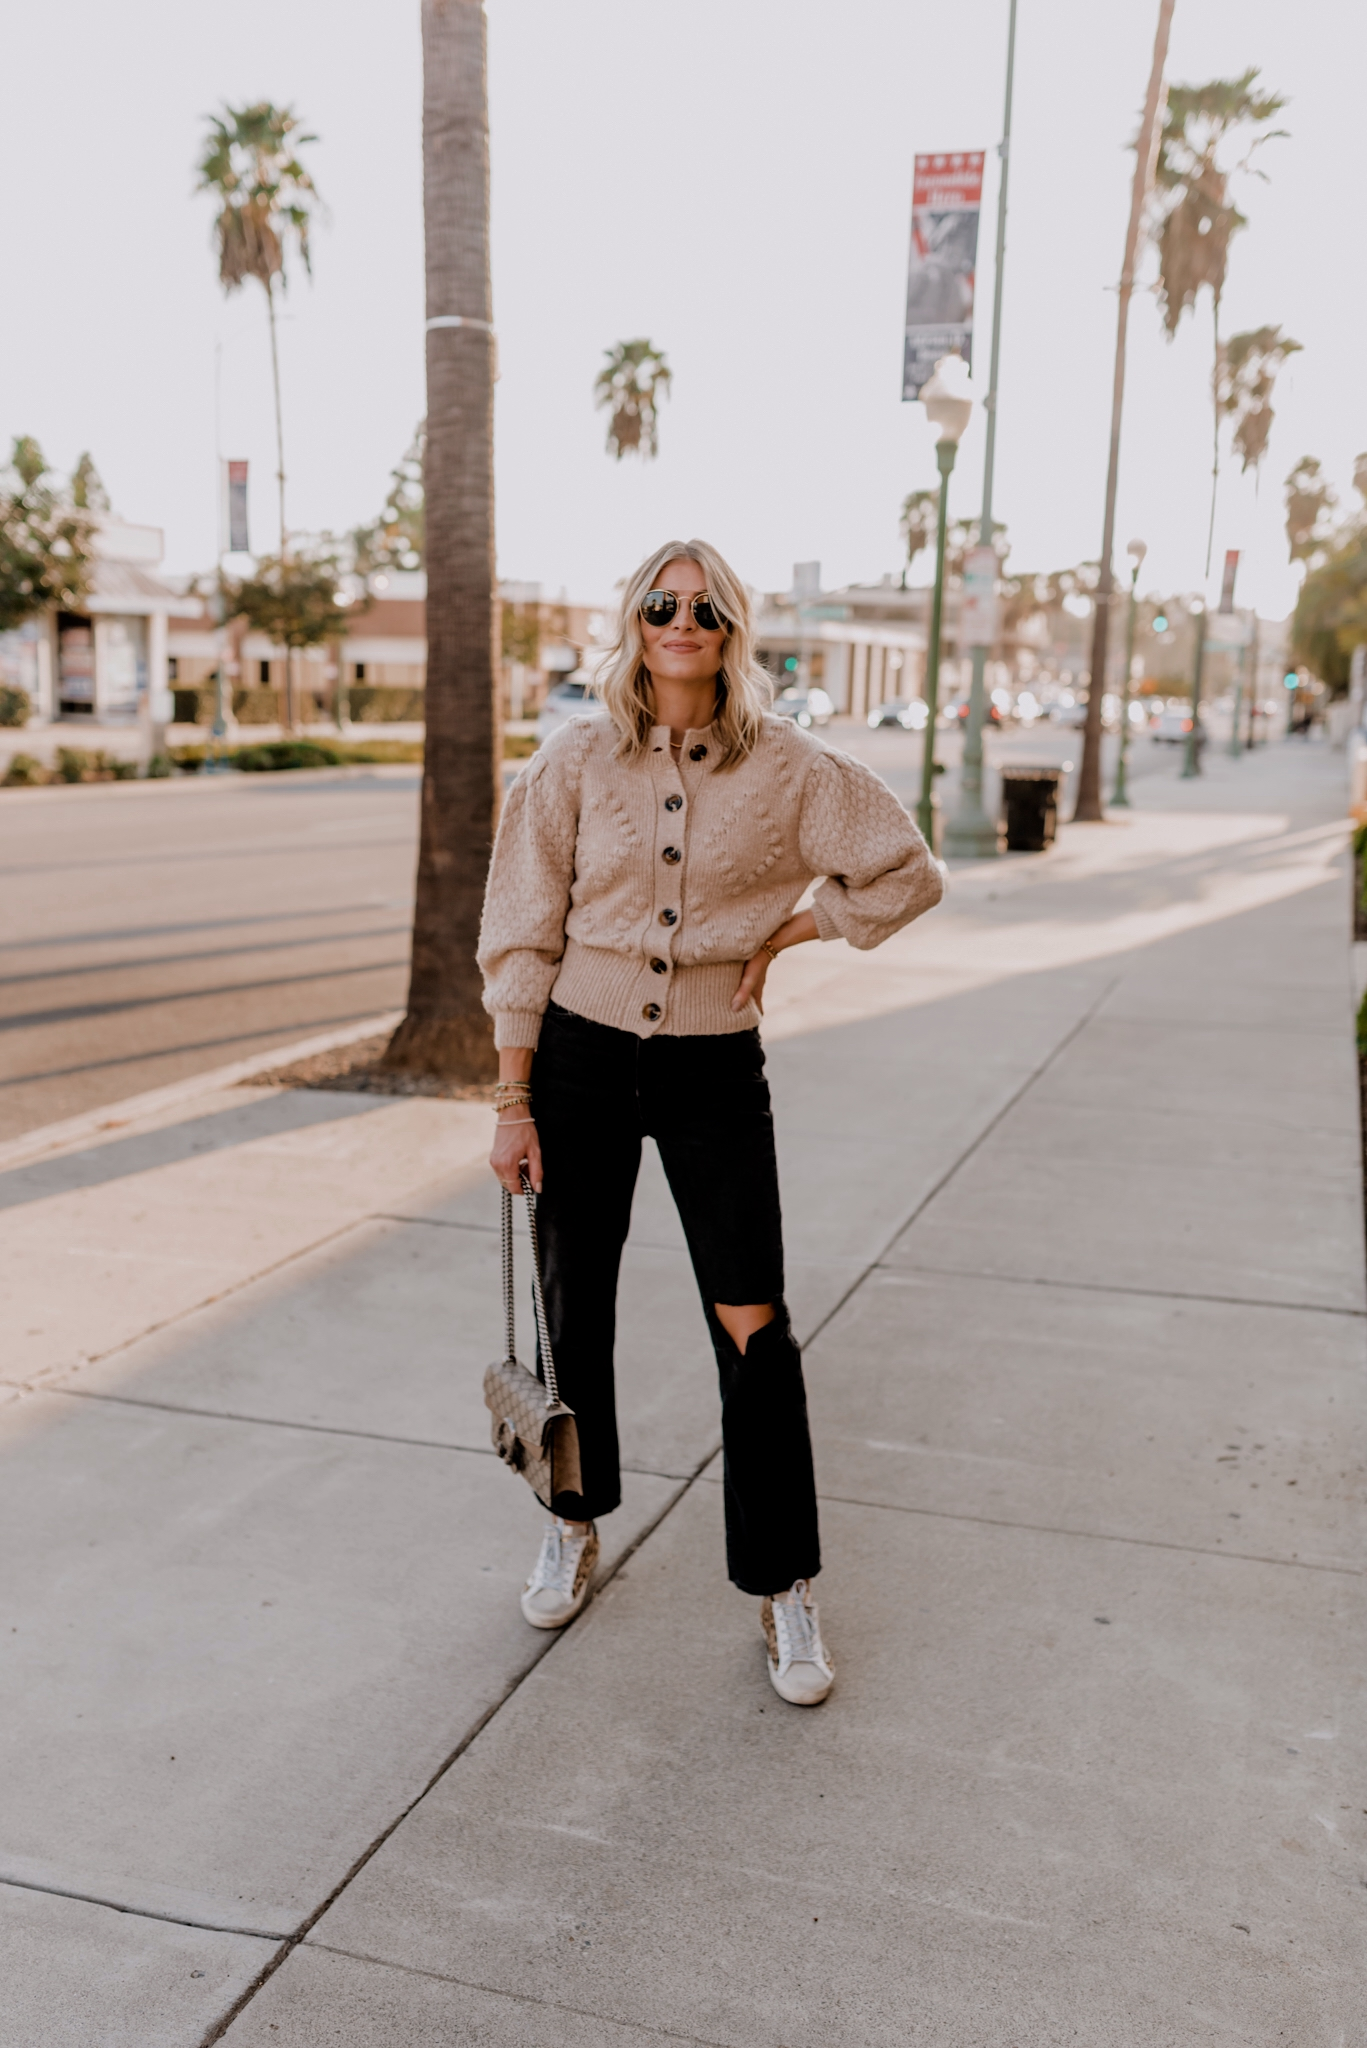 Best Cyber Monday Deals by popular San Diego life and style blog, Navy Grace: image of a woman wearing a cream button up bubble sleeve sweater, distressed black denim and Golden Goose sneakers.